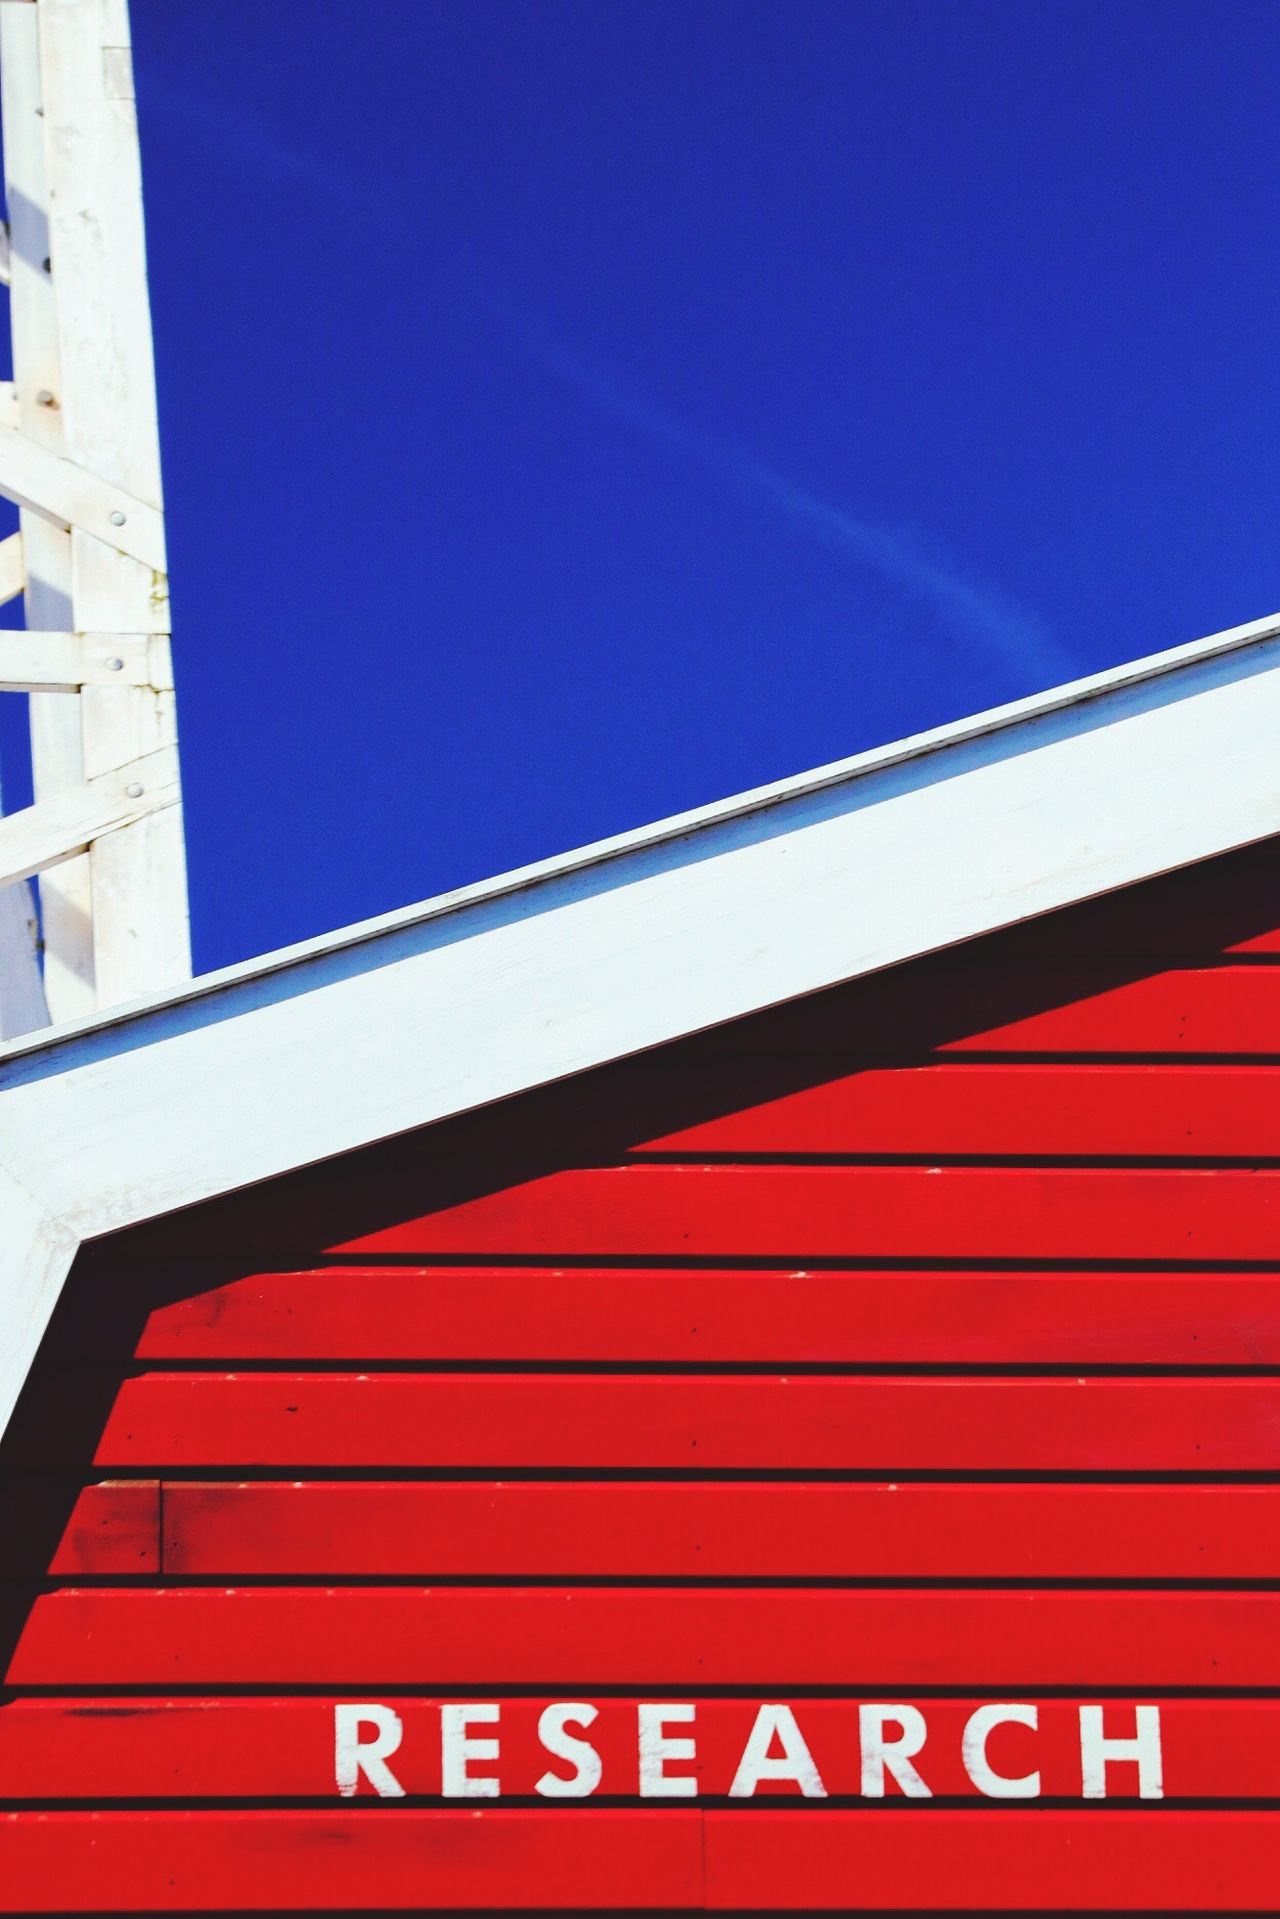 Red Built Structure Building Exterior Sky Outdoors Science Station Low Angle View Wooden Building Clear Sky Research And Development Research Station Research Blue Sky Wooden House Blue Communication